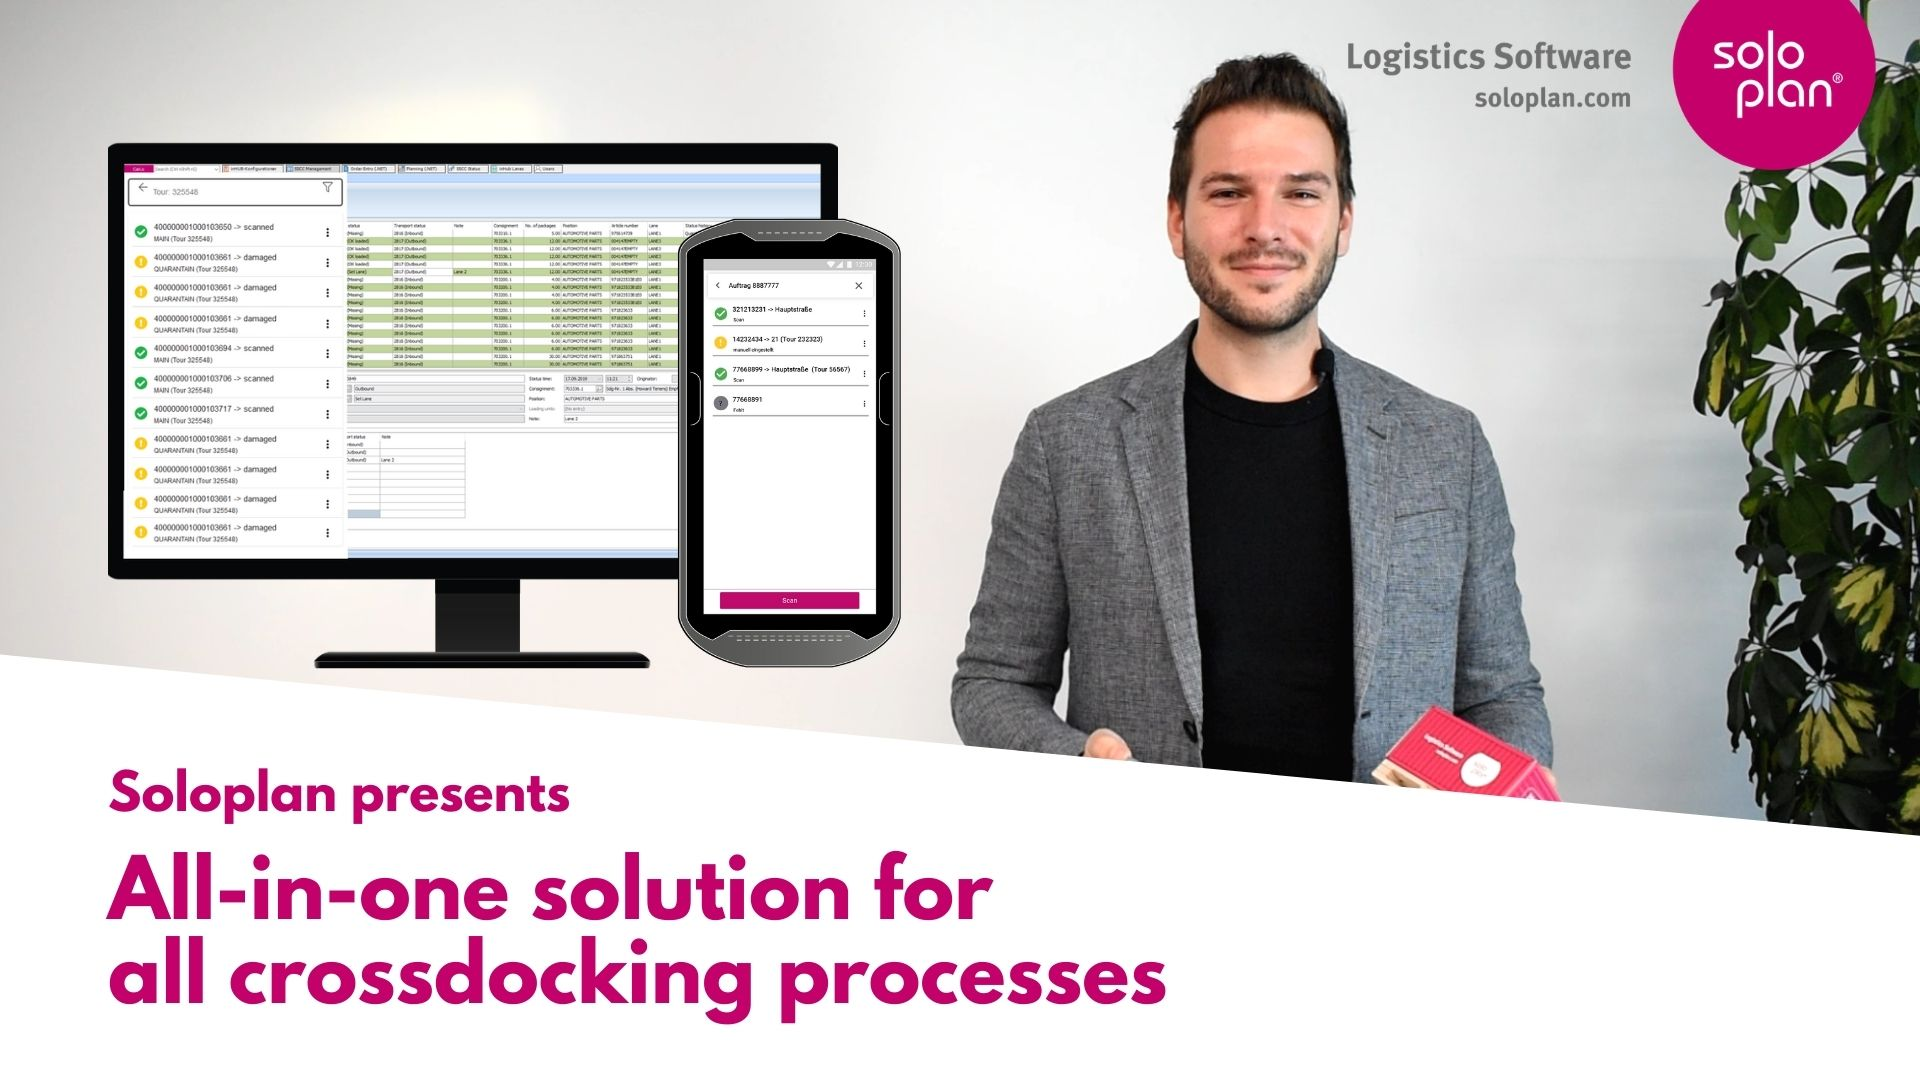 The complete solution of all CrossDocking processes